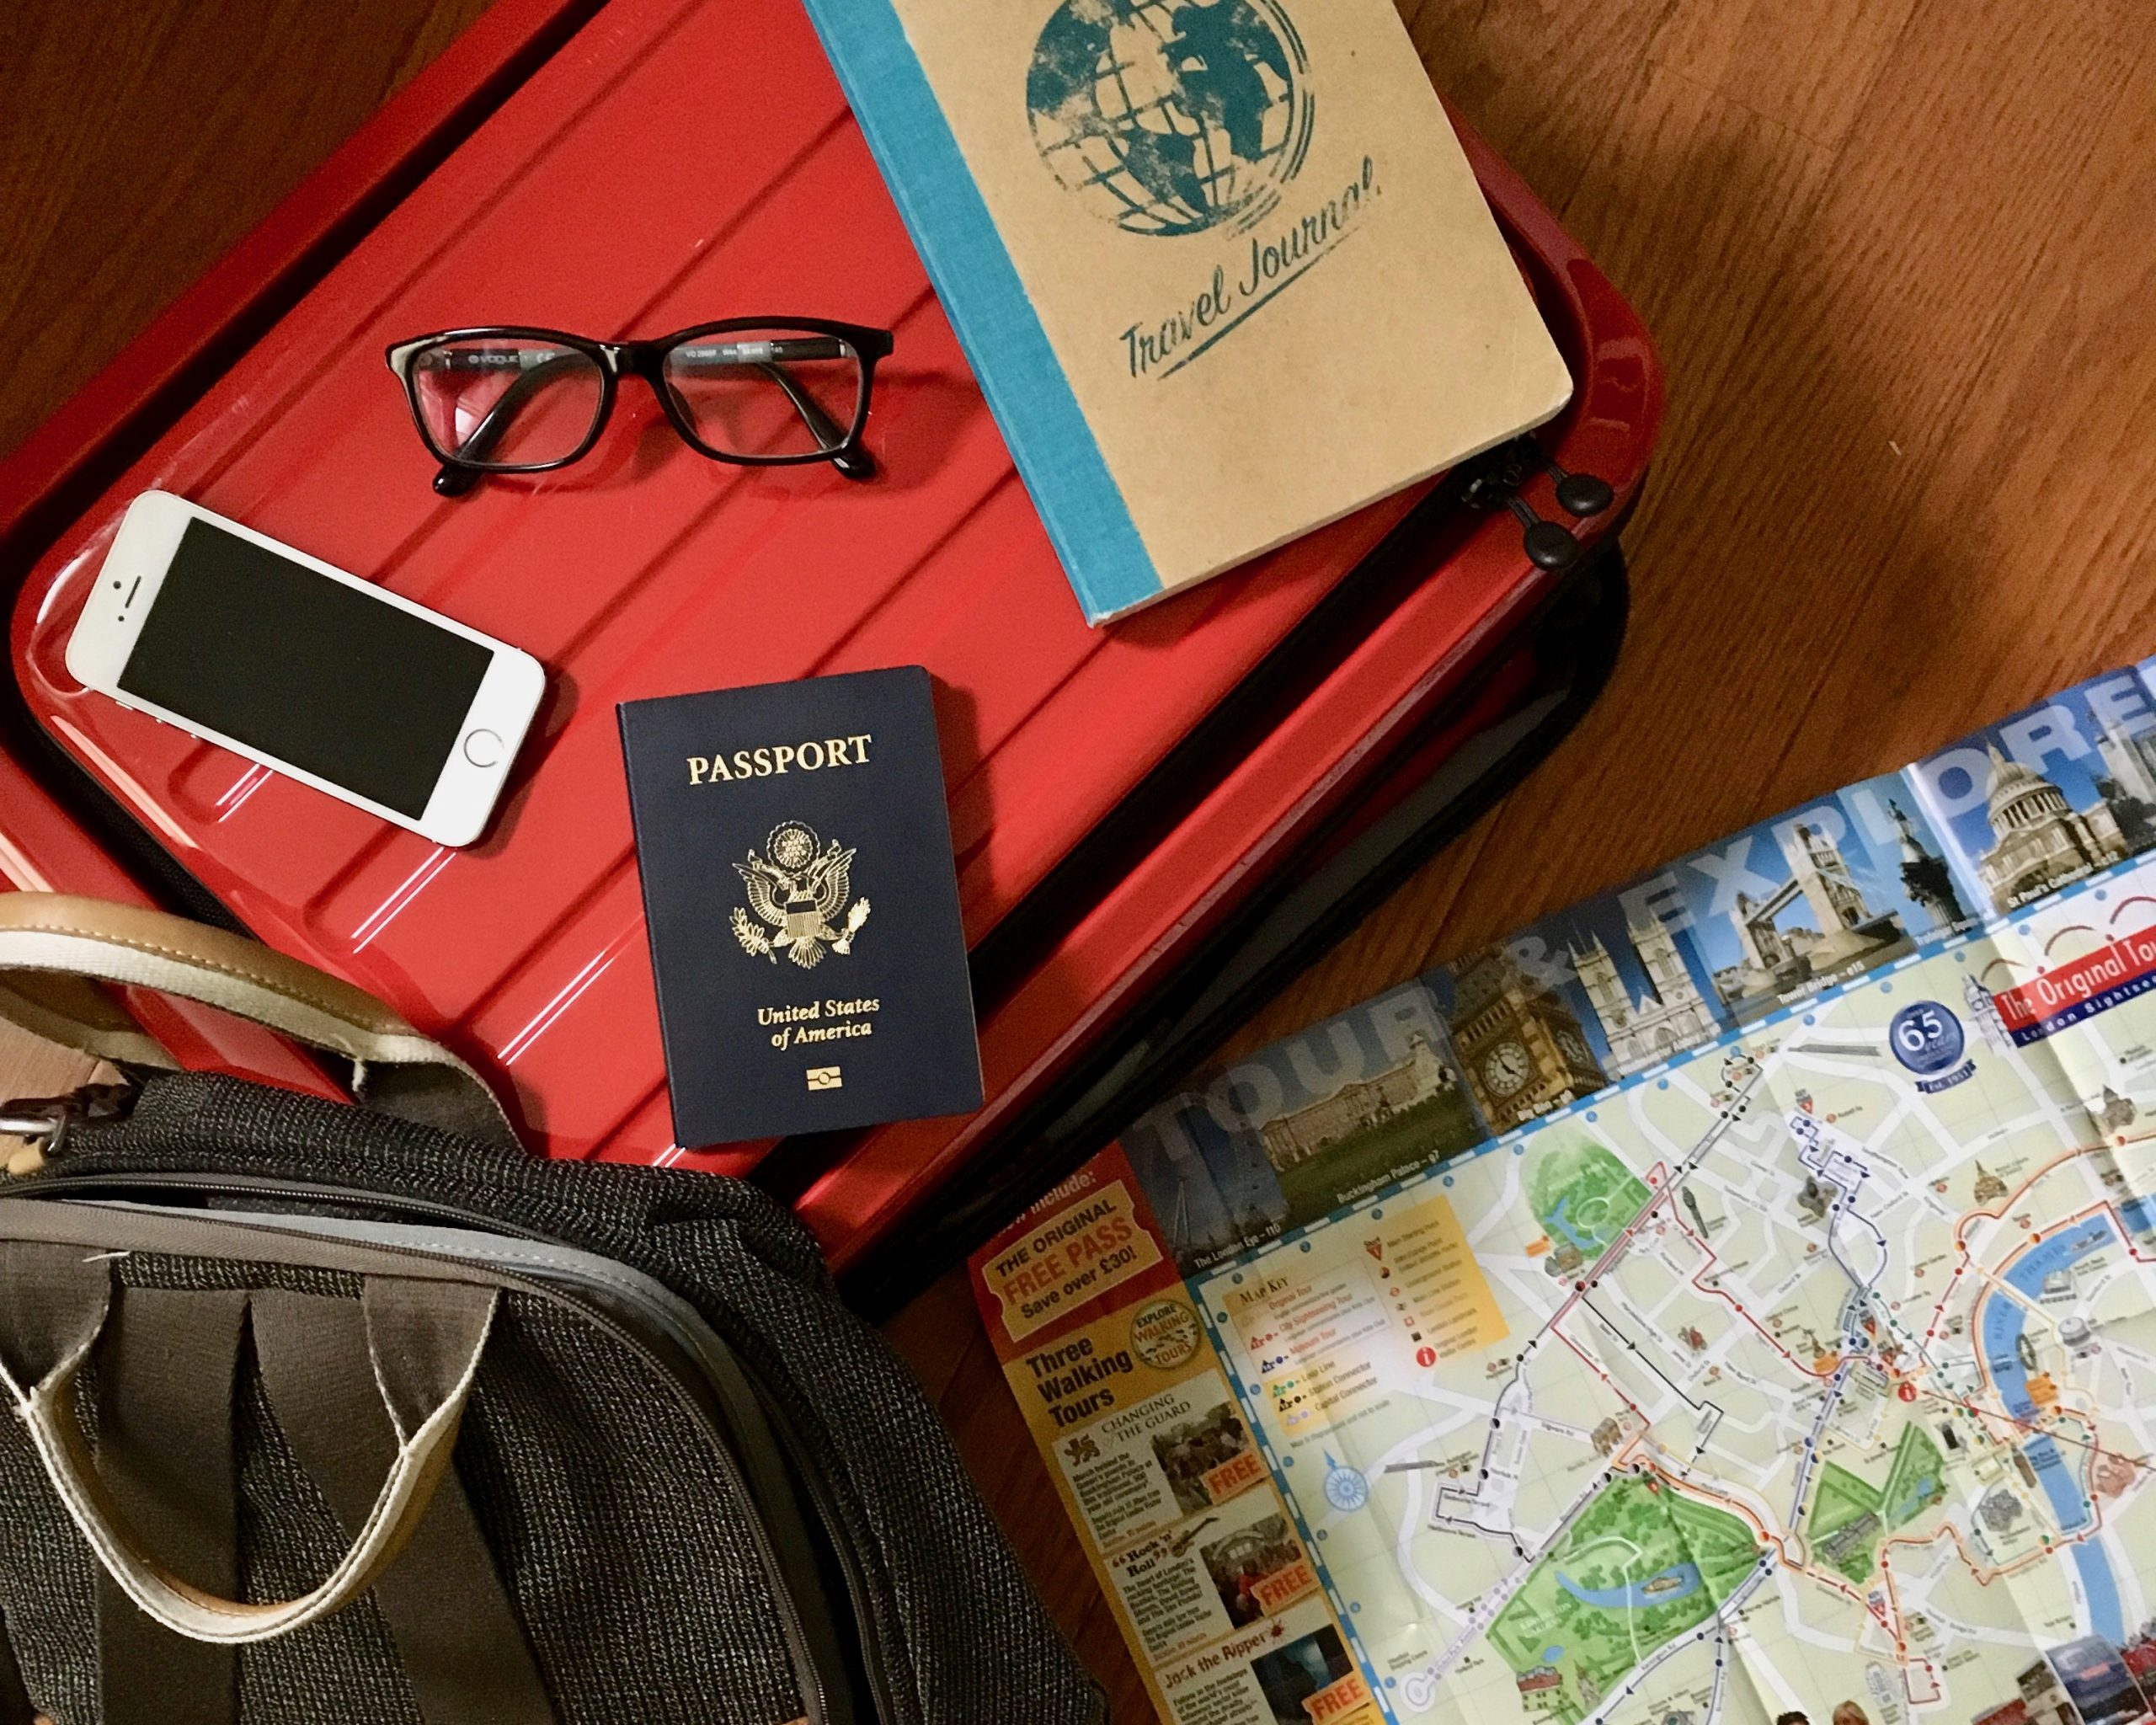 Can I take a gap year after high school?